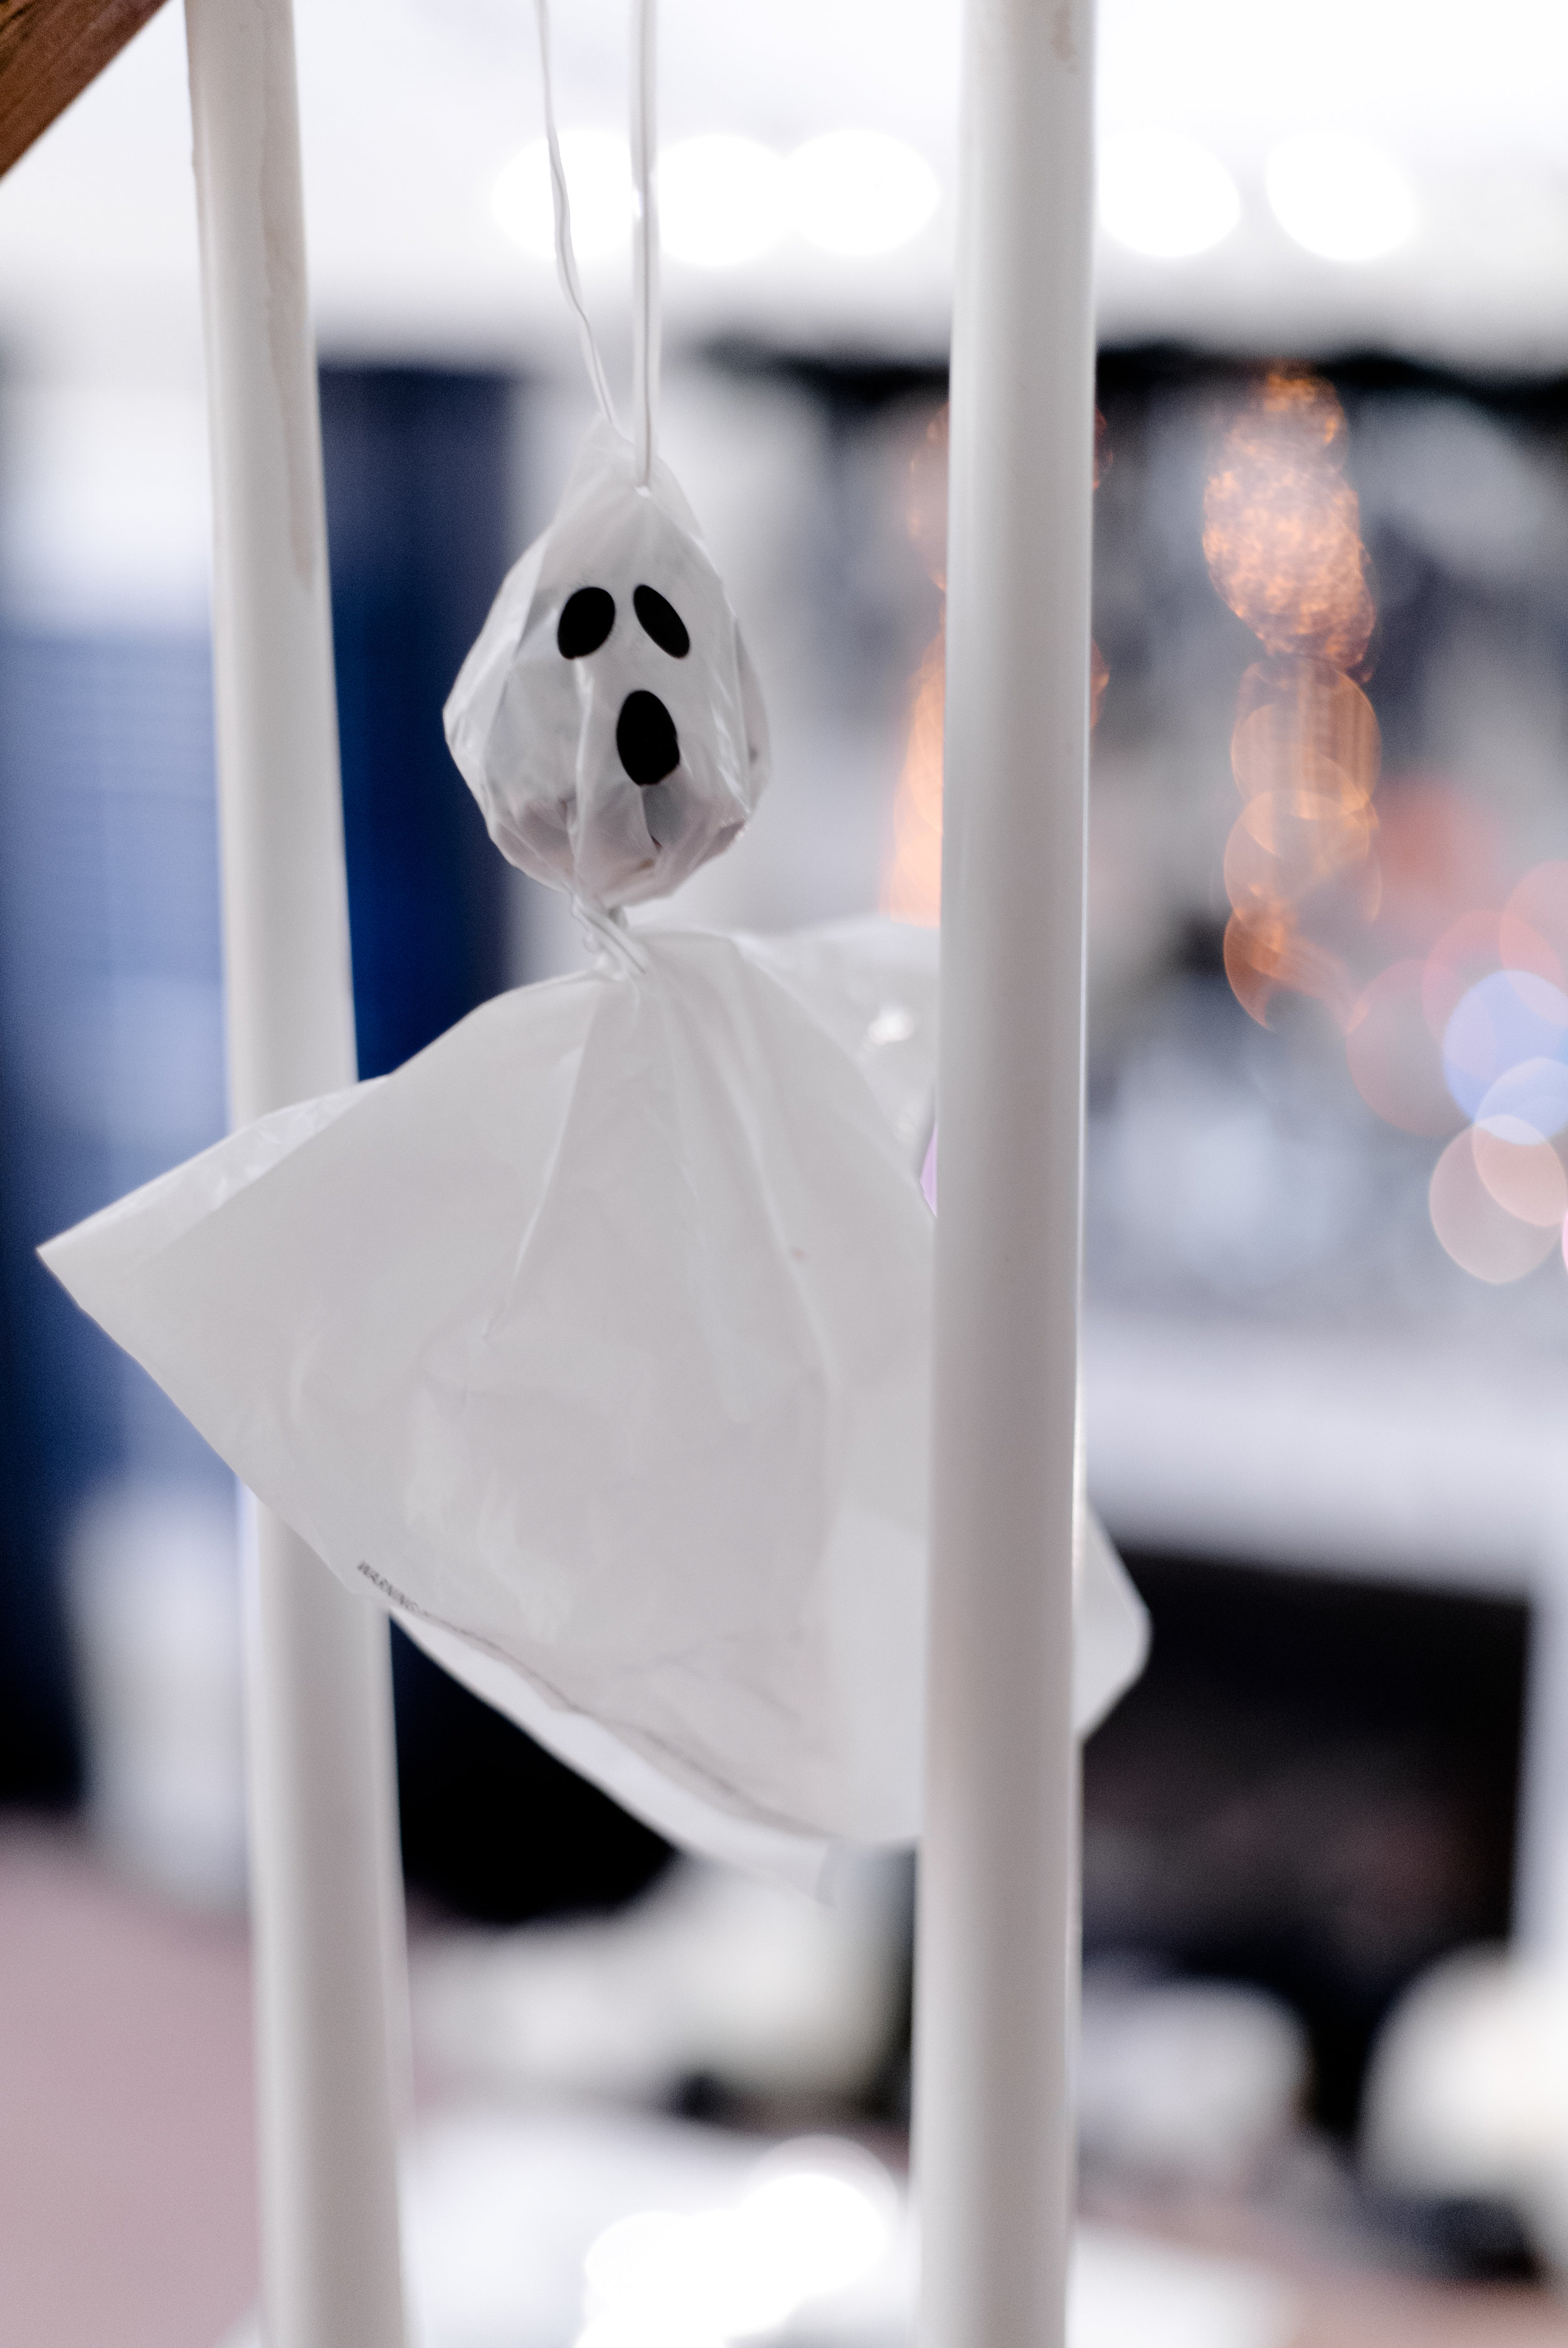 My dad and I made these ghosts when I was younger and I've held on to them. I hang them between the stair railings so the ghosts appear to be scurrying up the stairs.